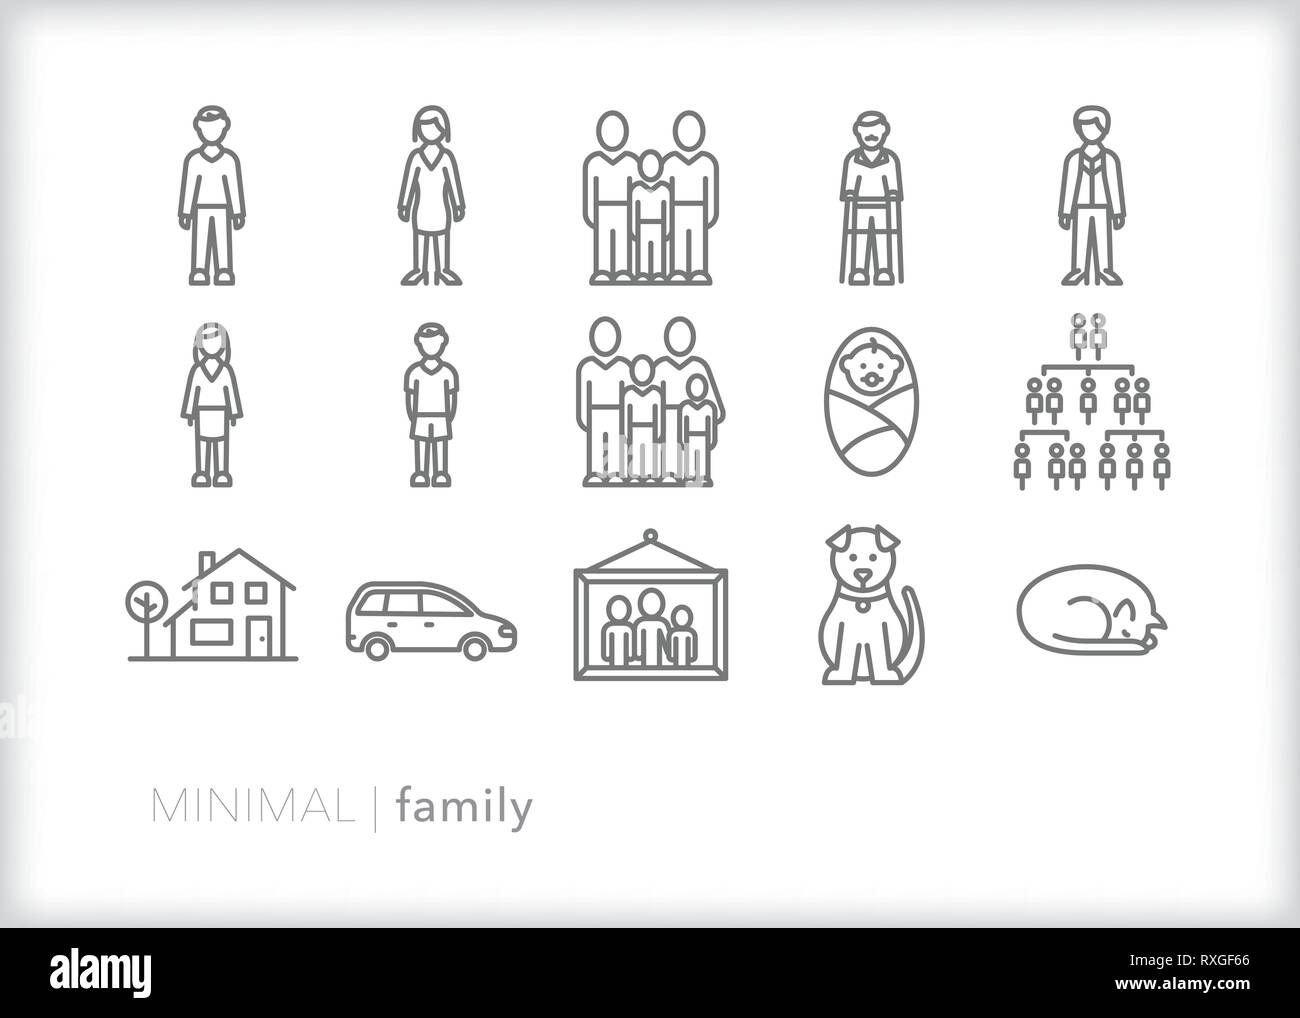 Set of 15 family line icons showing types of family members including mother, father, children, baby, pets, house, car, family portrait and ancestry - Stock Vector